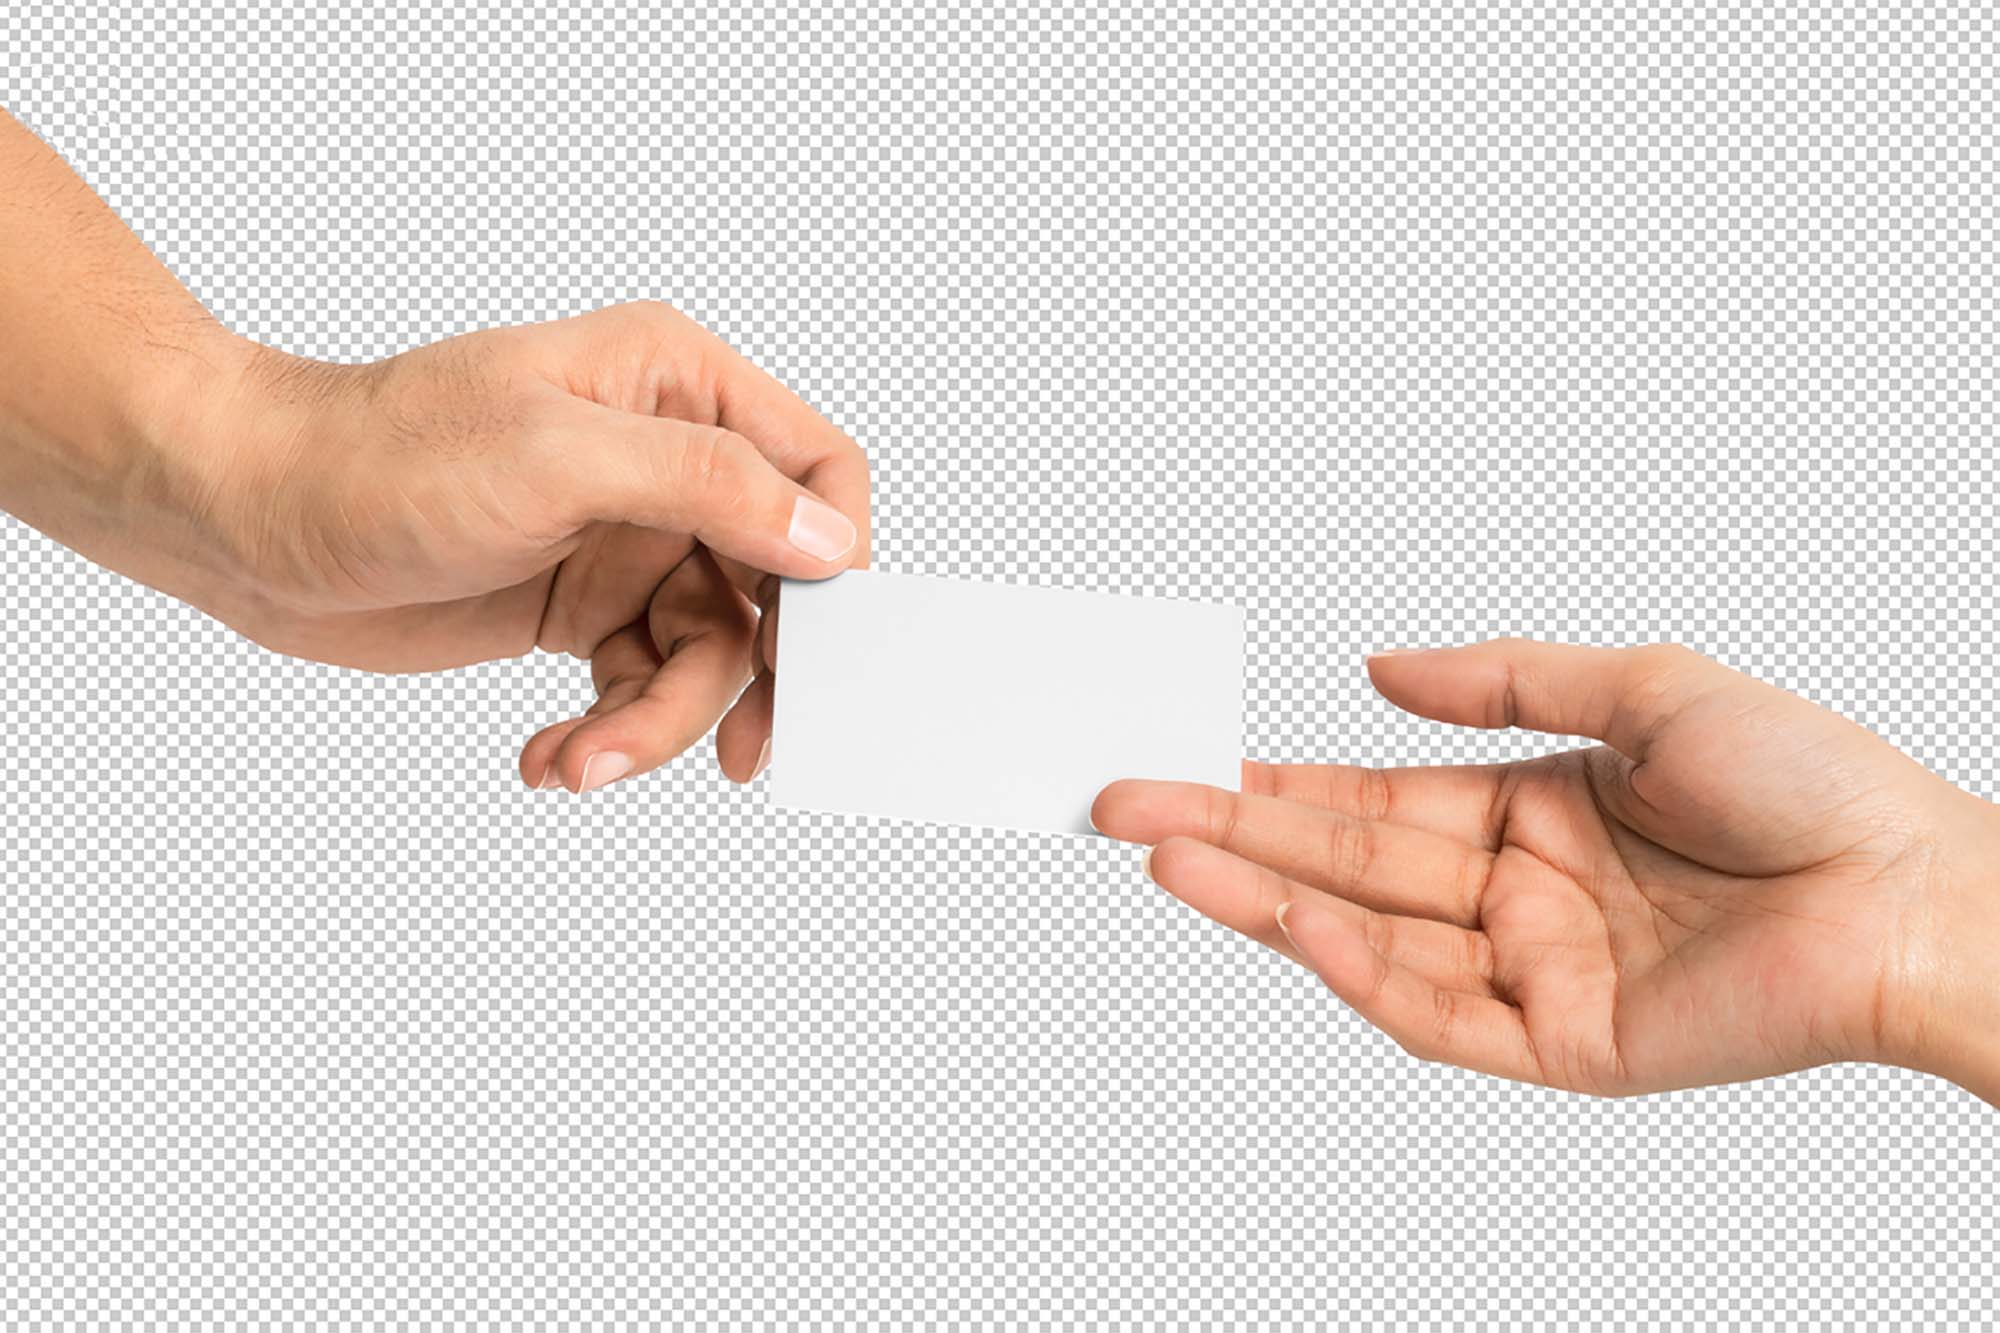 Business Card Given in Hand Mockup 2